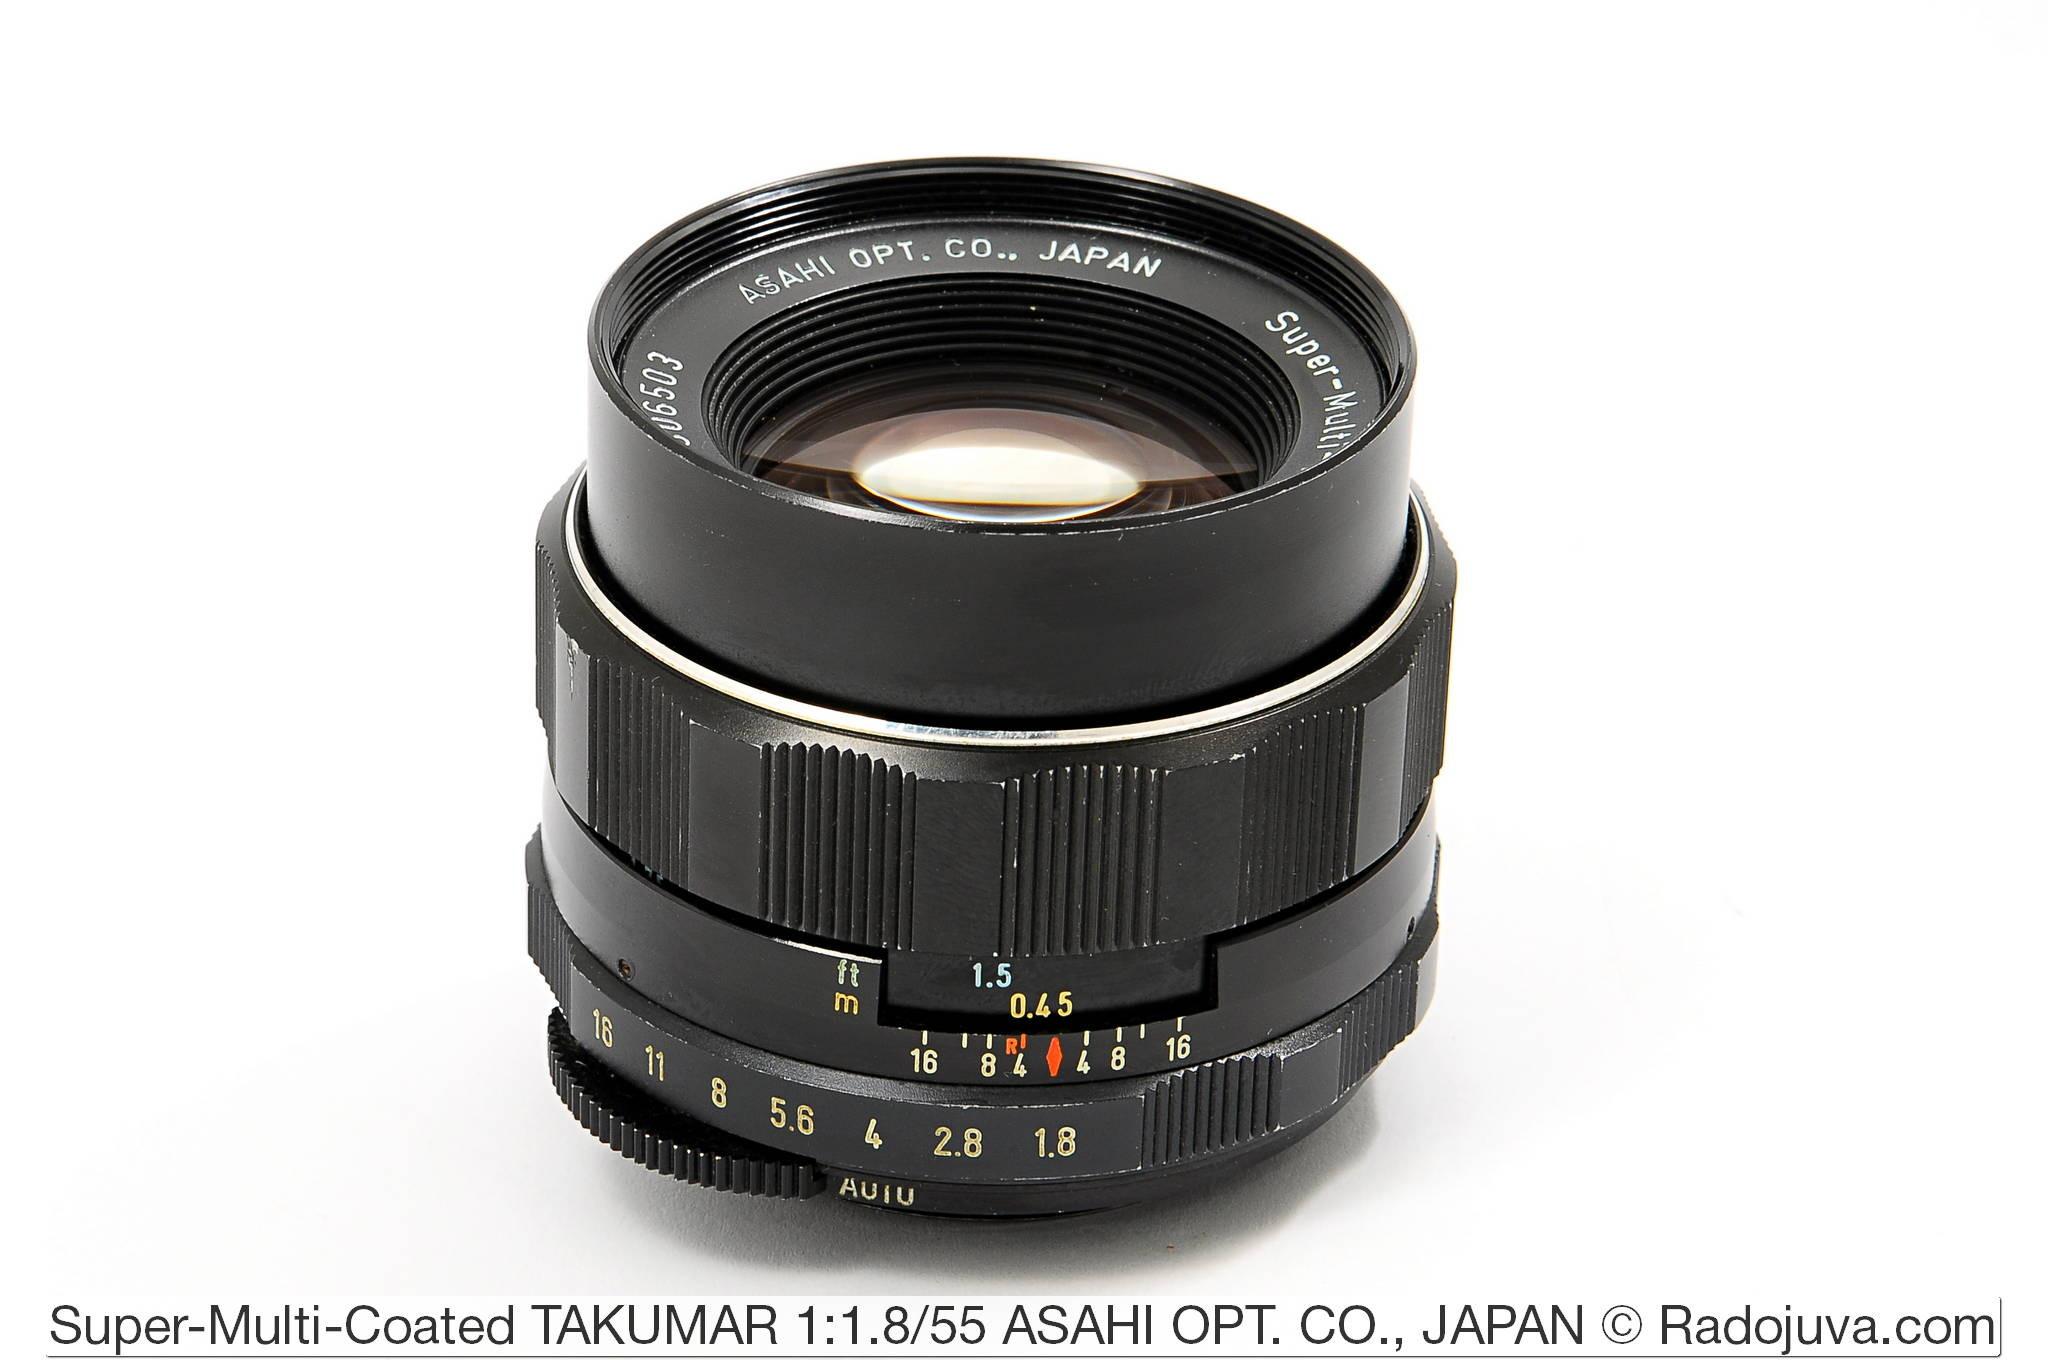 Super-Multi-Coated TAKUMAR 1:1.8/55 ASAHI OPT. CO., JAPAN